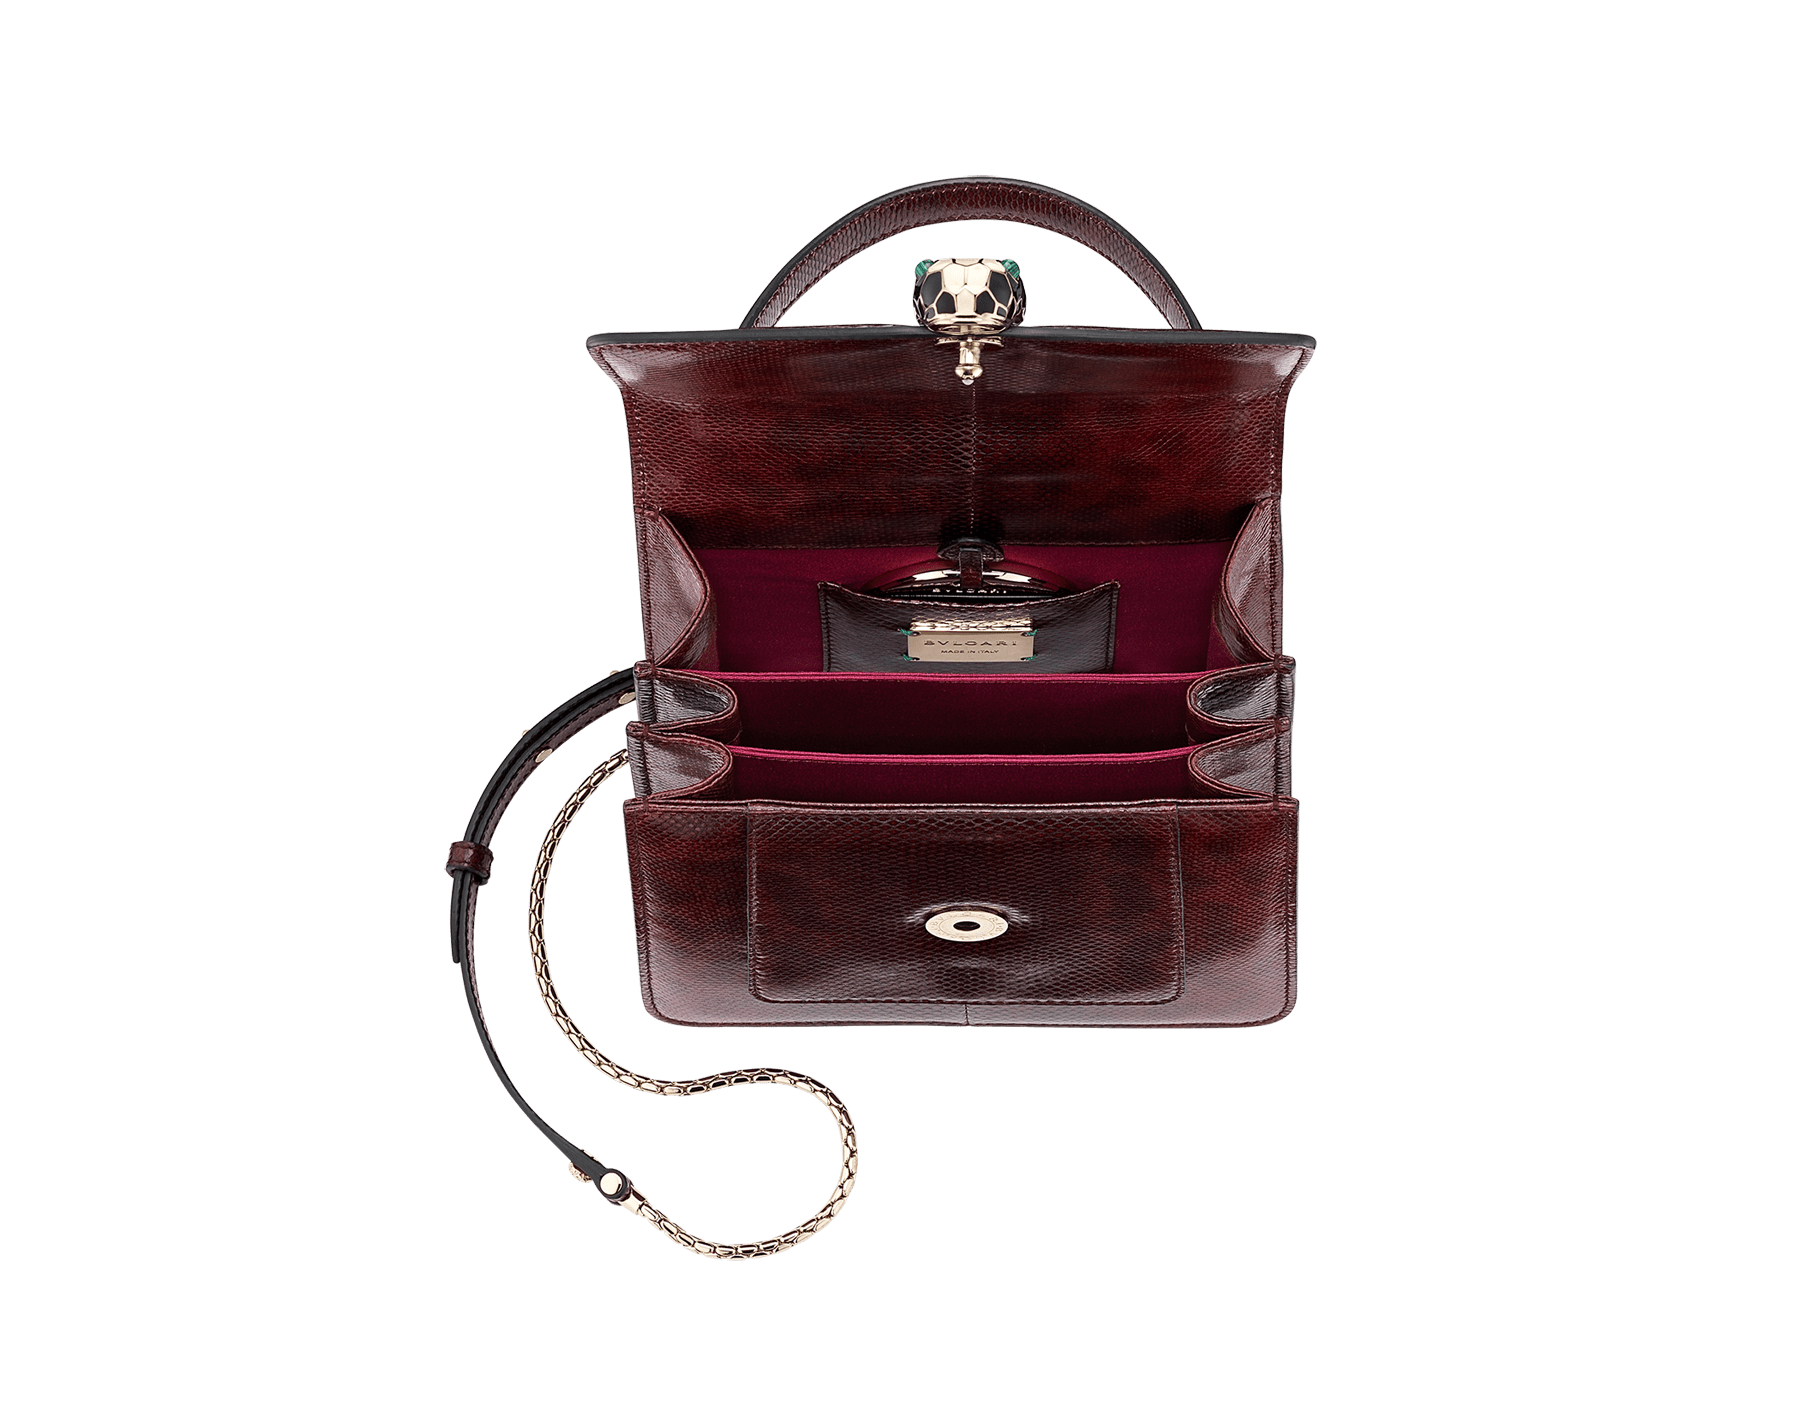 Flap cover bag Serpenti Forever in roman garnet shiny karung skin. Brass light gold plated hardware and tempting snake head closure in shiny black and white enamel, with eyes in green malachite. 286198 image 4